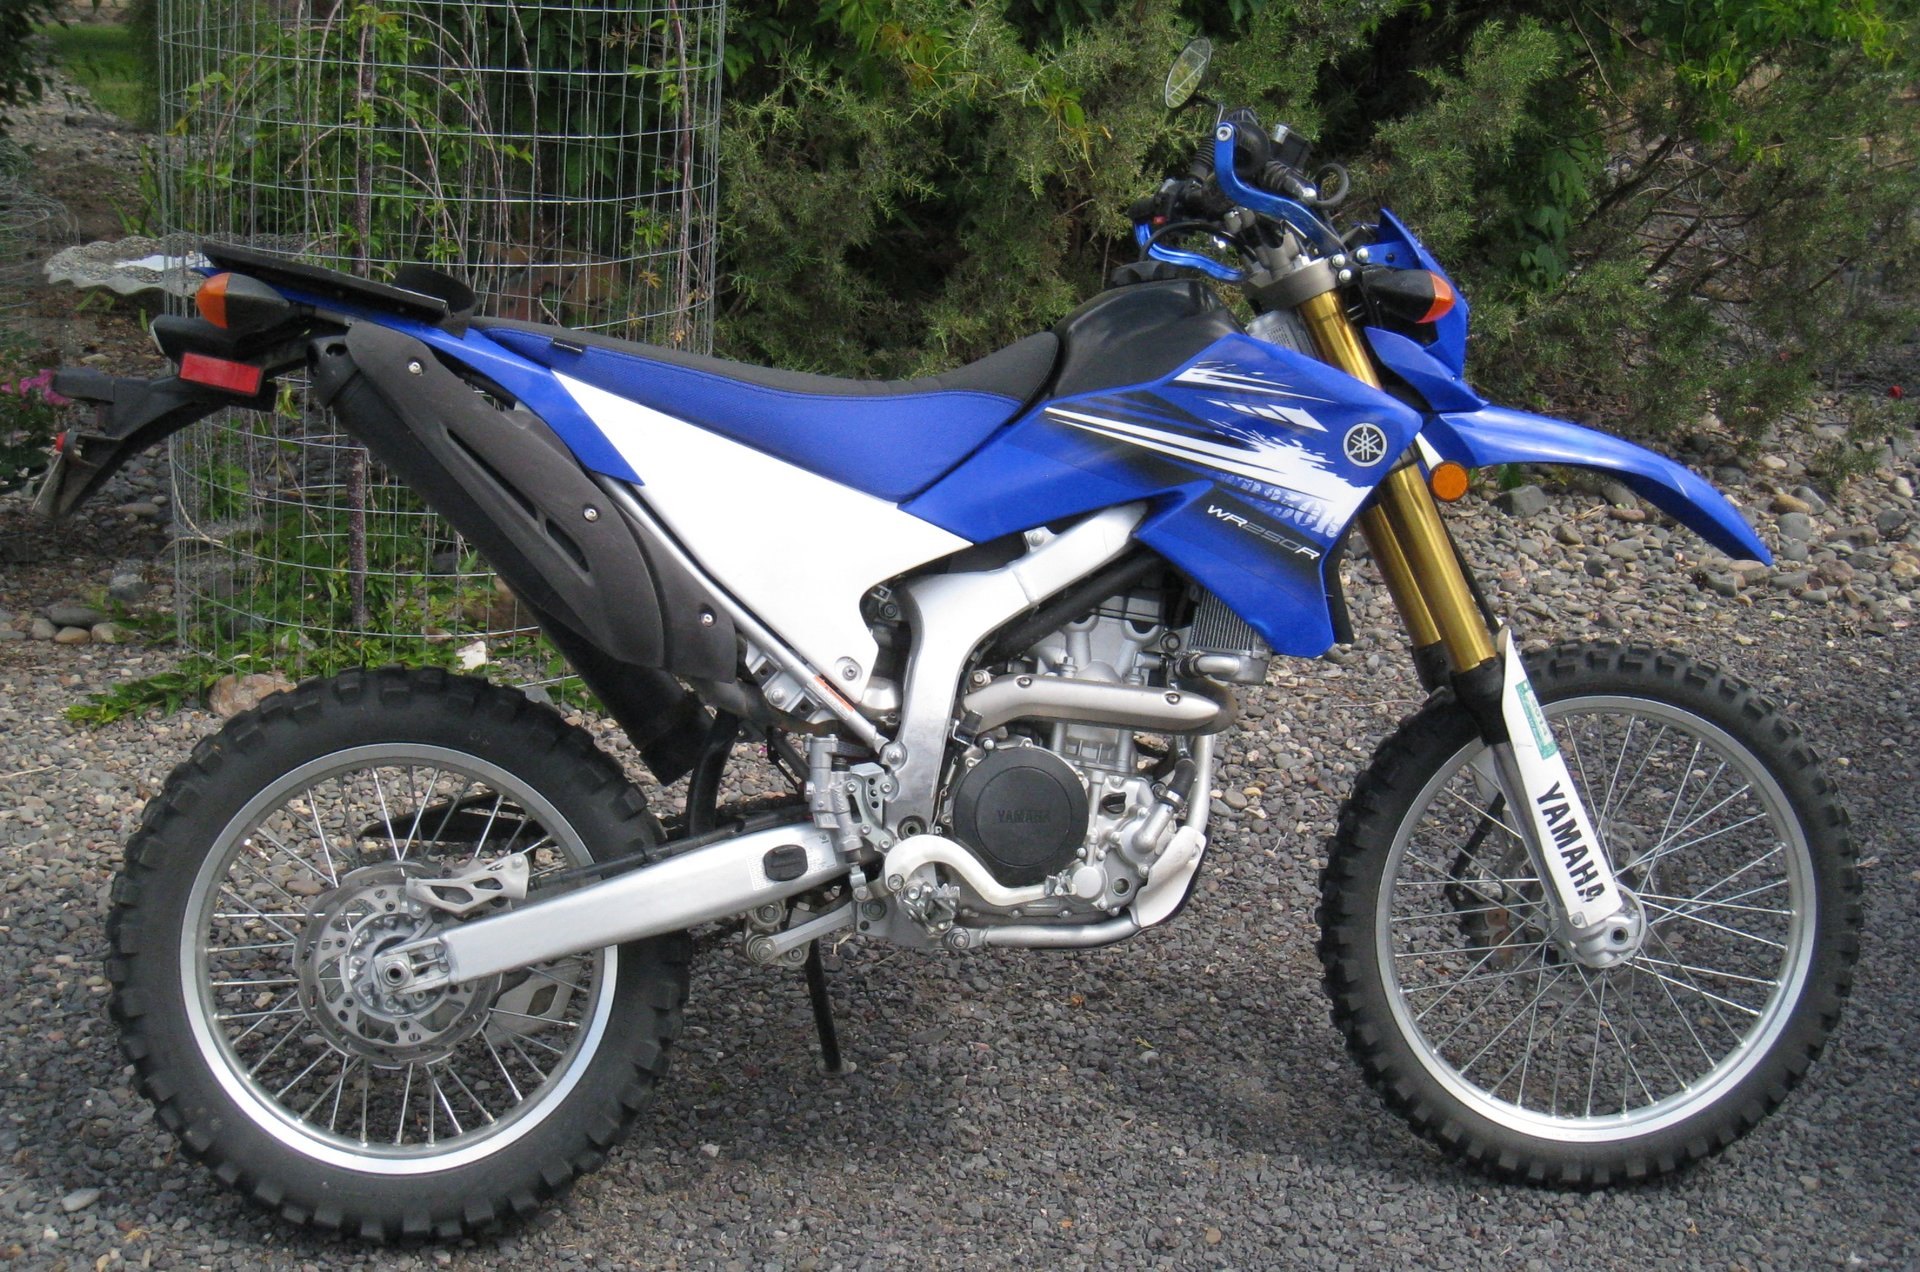 Frank's 2012 Yamaha WR250R Exhaust Modification — Dual Sport